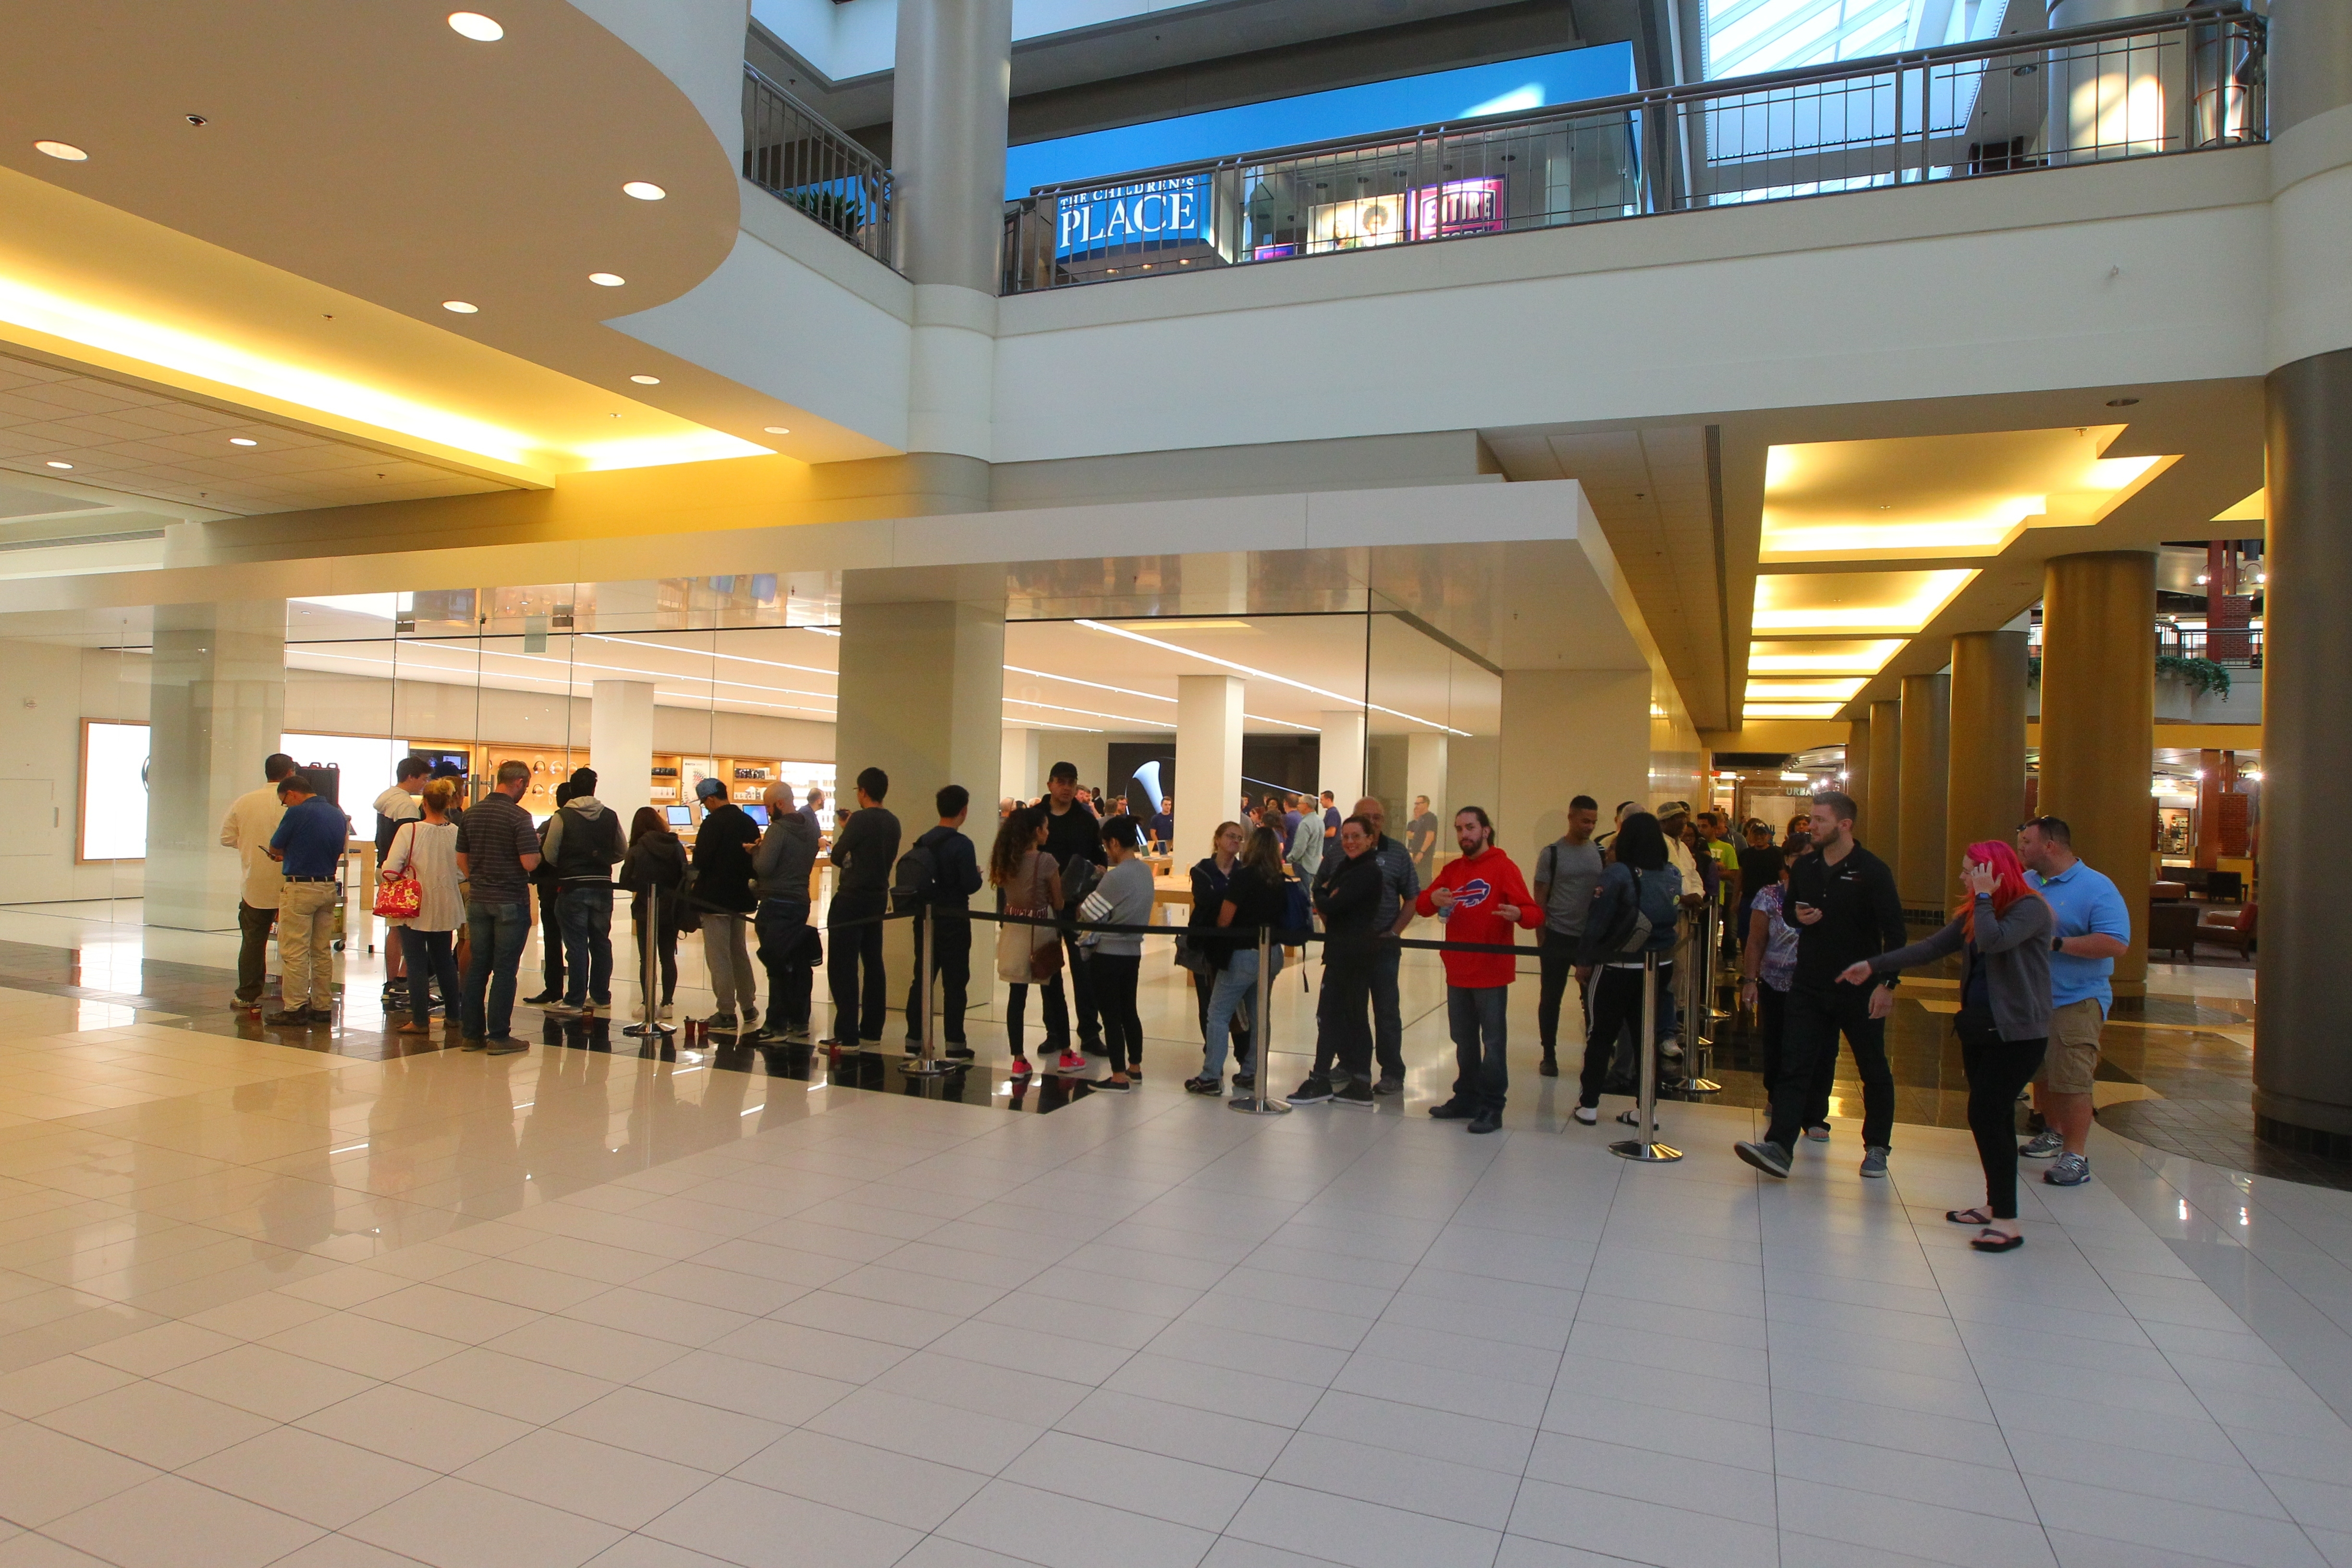 Customers began lining up in the wee hours at Apple's Walden Galleria store in Cheektowaga for the iPhone 7. Some were disappointed to find the iPhone 7 Plus model was unavailable unless a prior reservation was made.